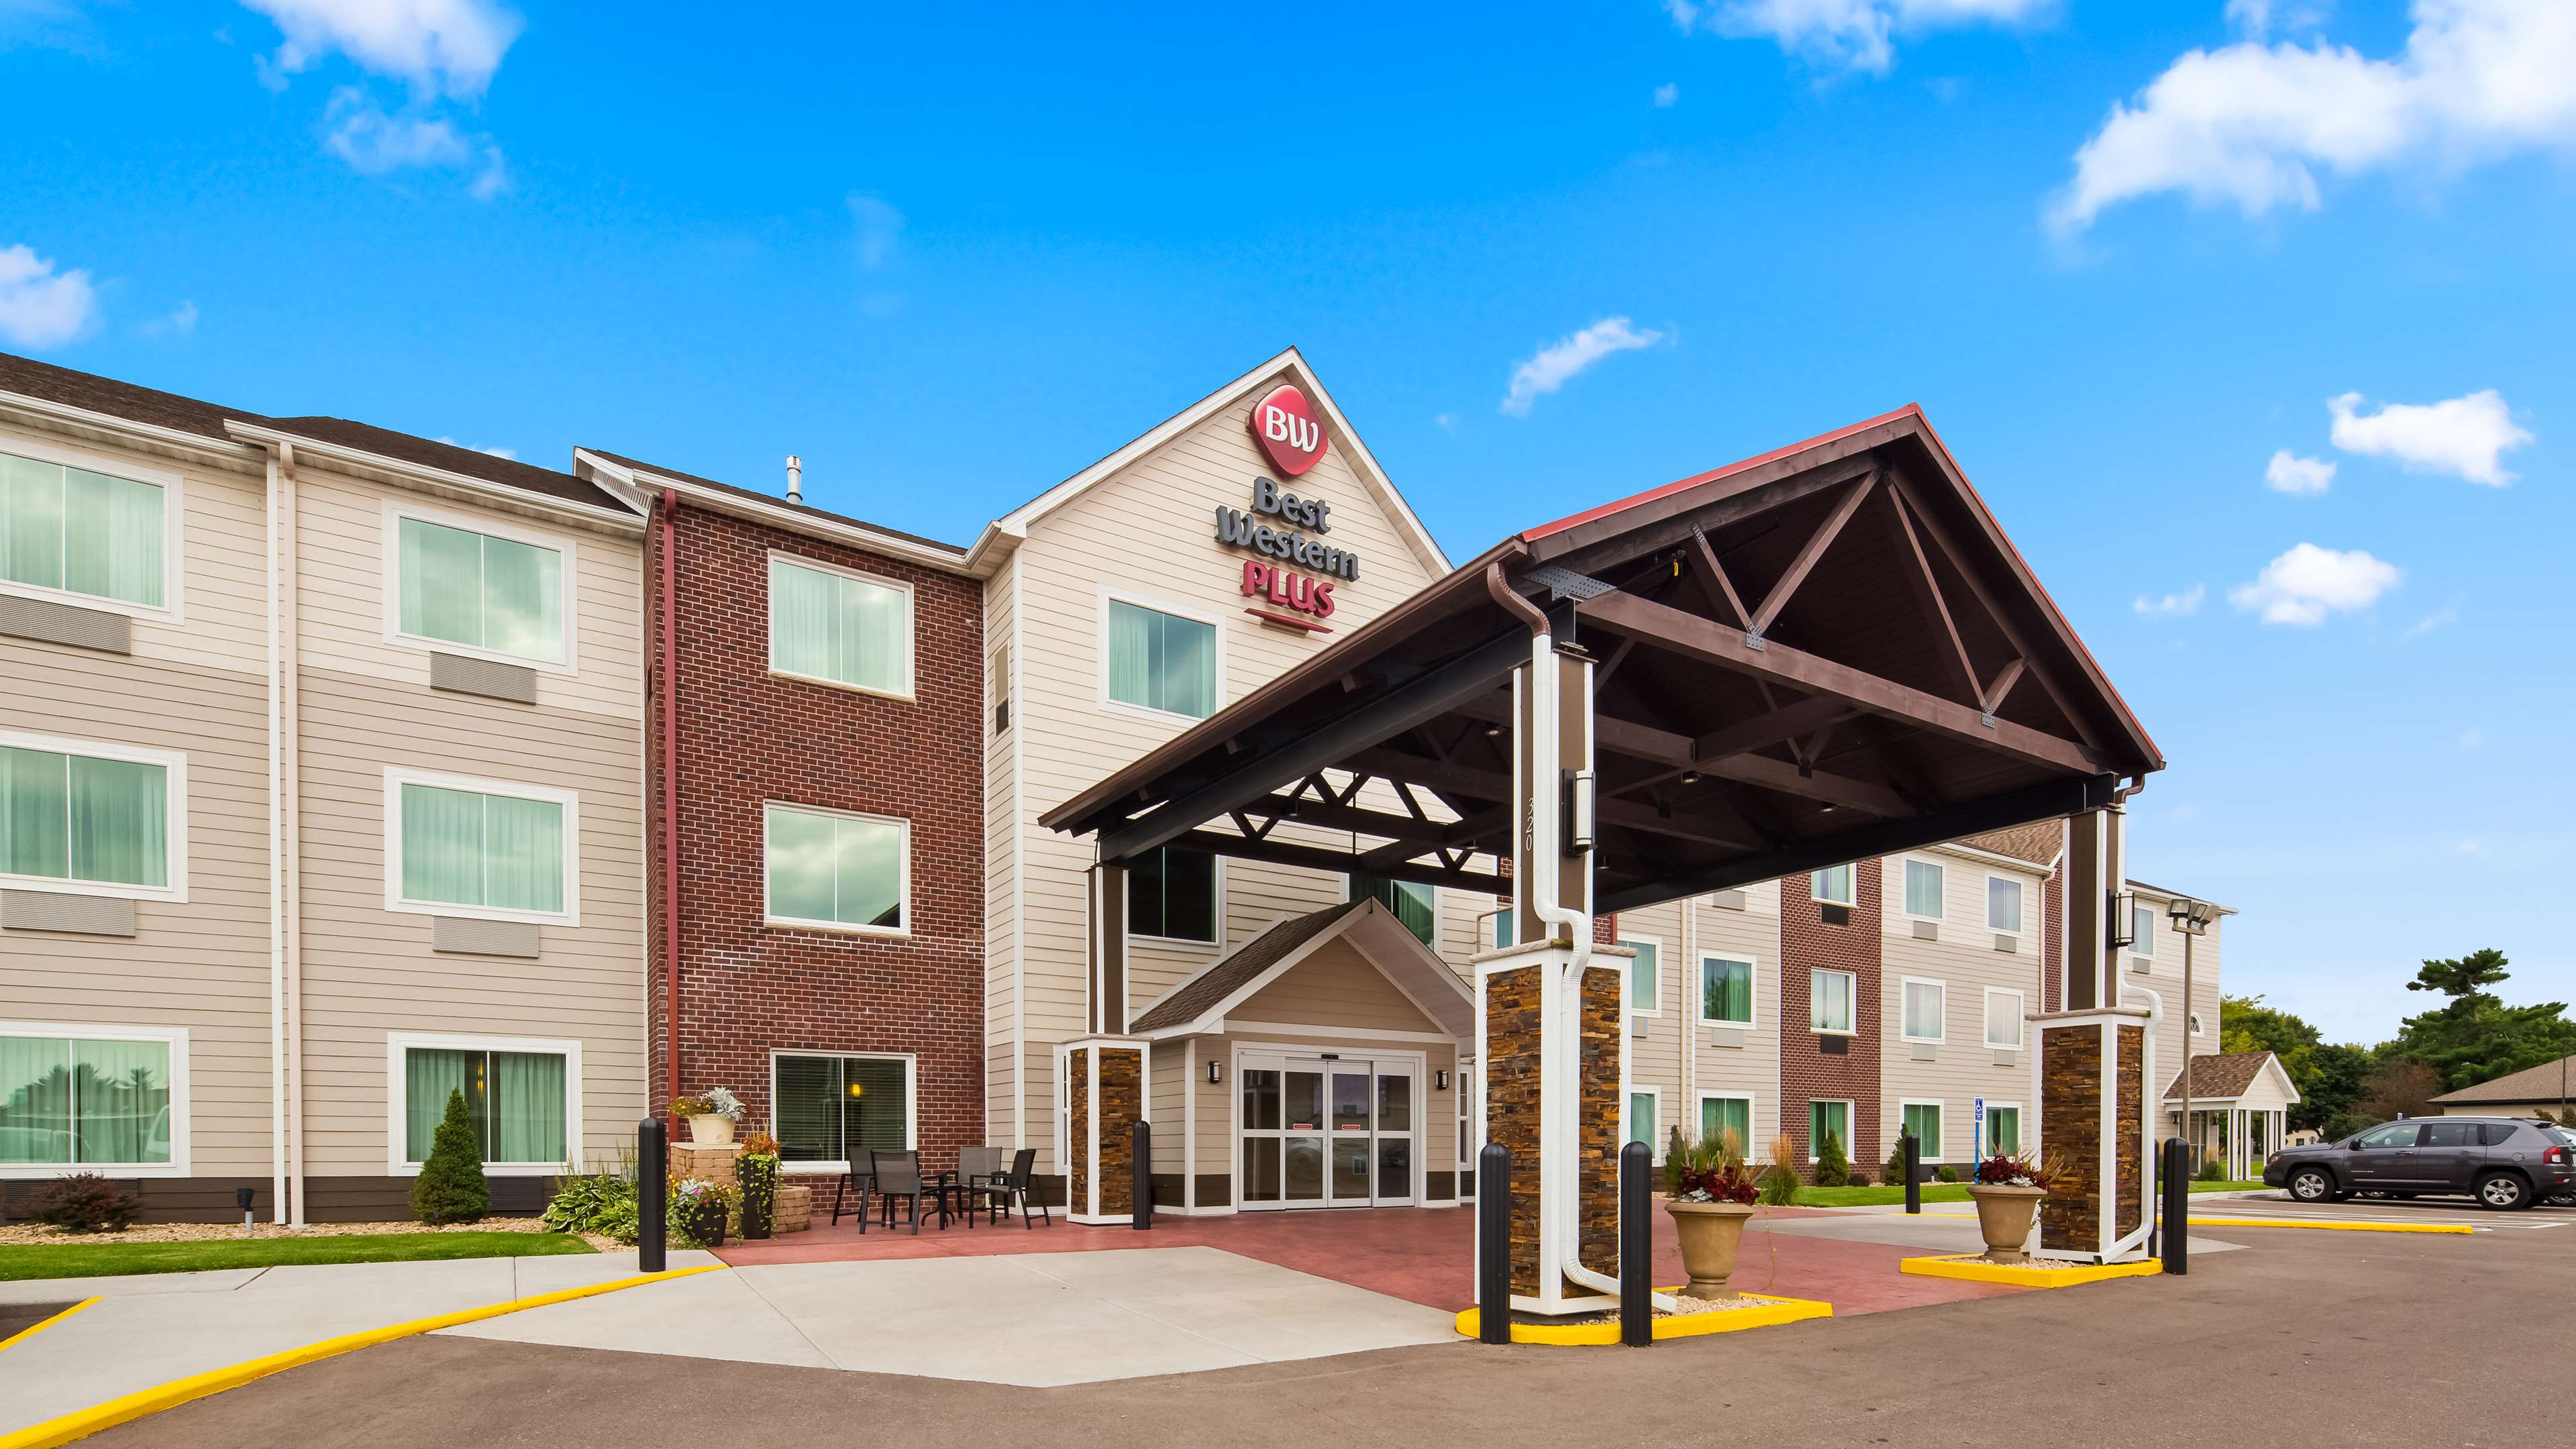 Hotels In Menomonie Wi Near Uw Stout